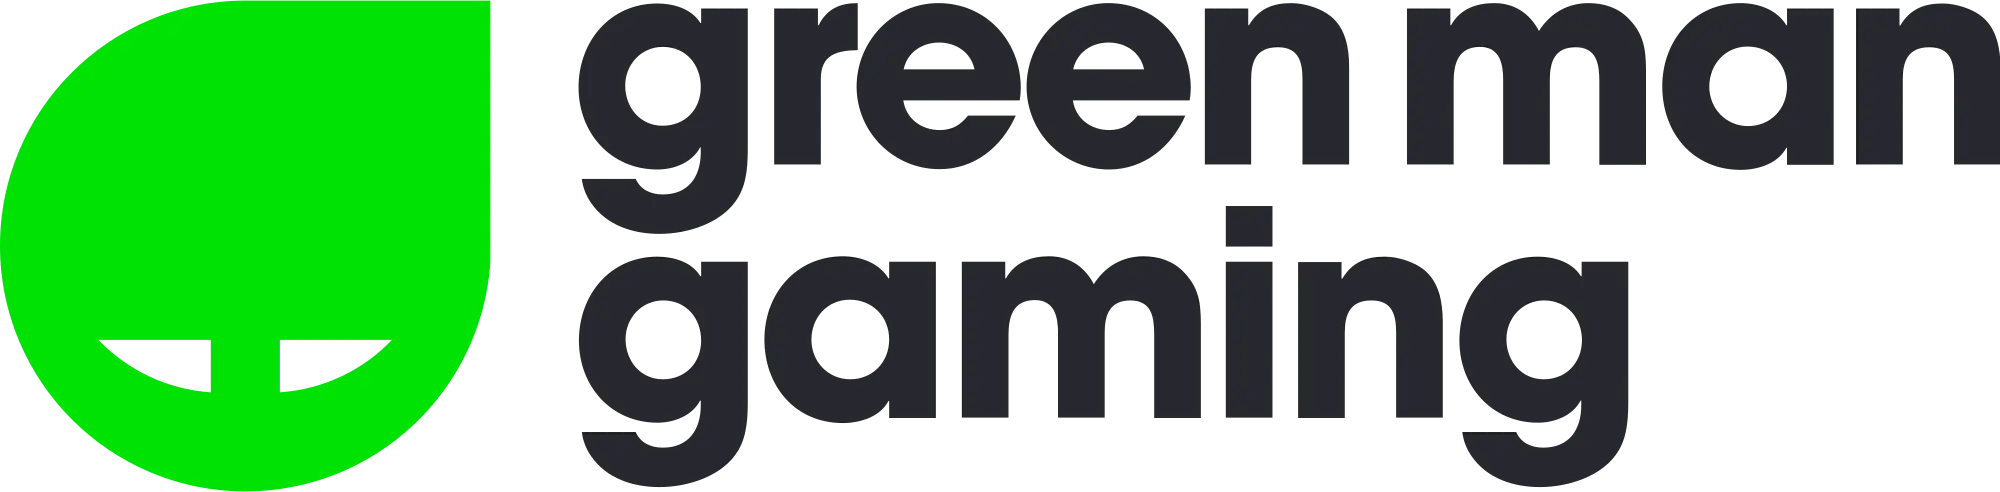 Greenmangaming Coupon - September 2019 - Extra 20% off